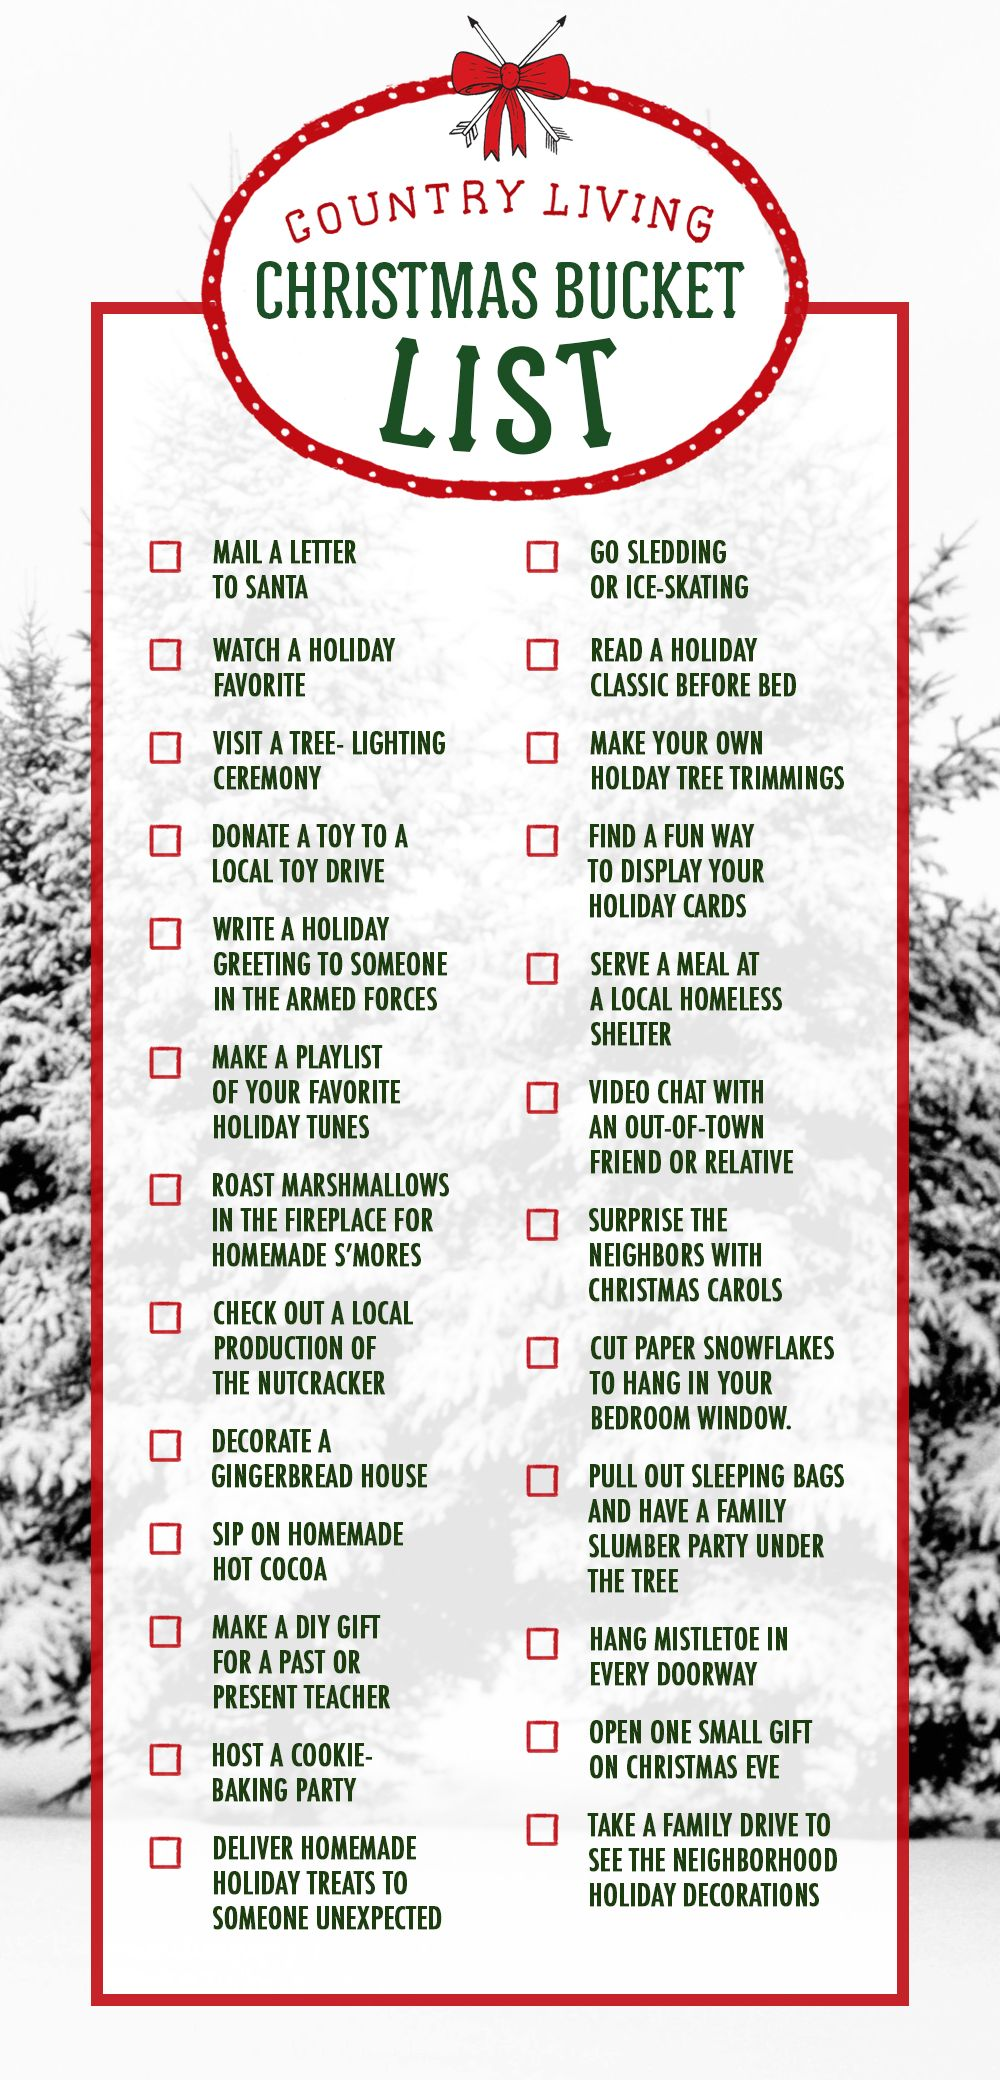 The 25 Most Quintessential Christmas Activities